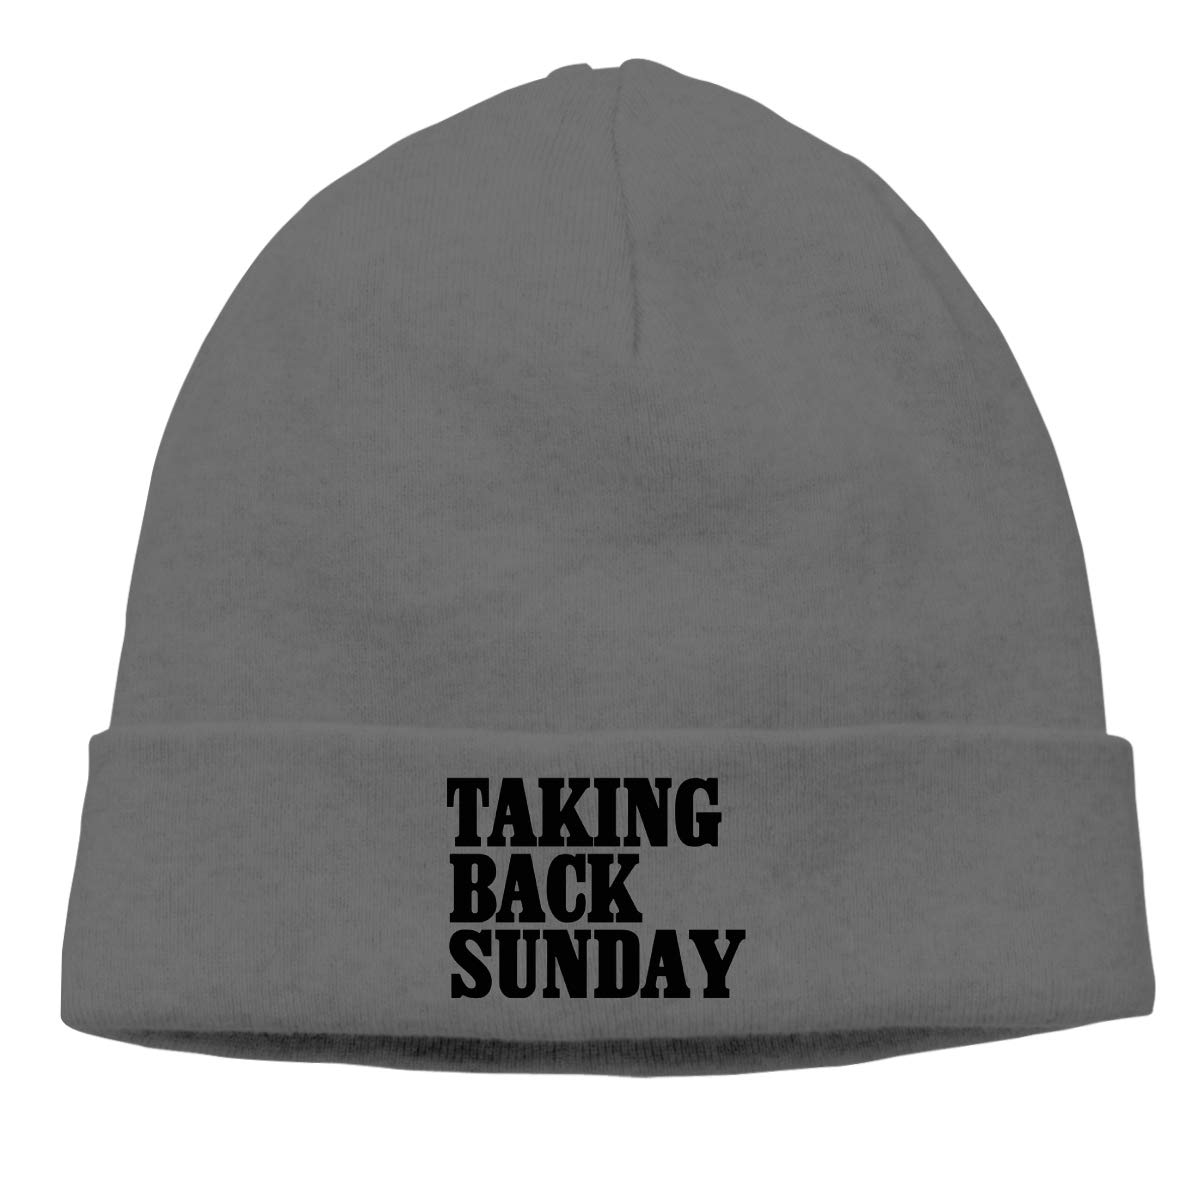 Nskngr Taking Back Sunday Cap Men Winter Summer Warm Serious Beanies Ski Slouchy Hat